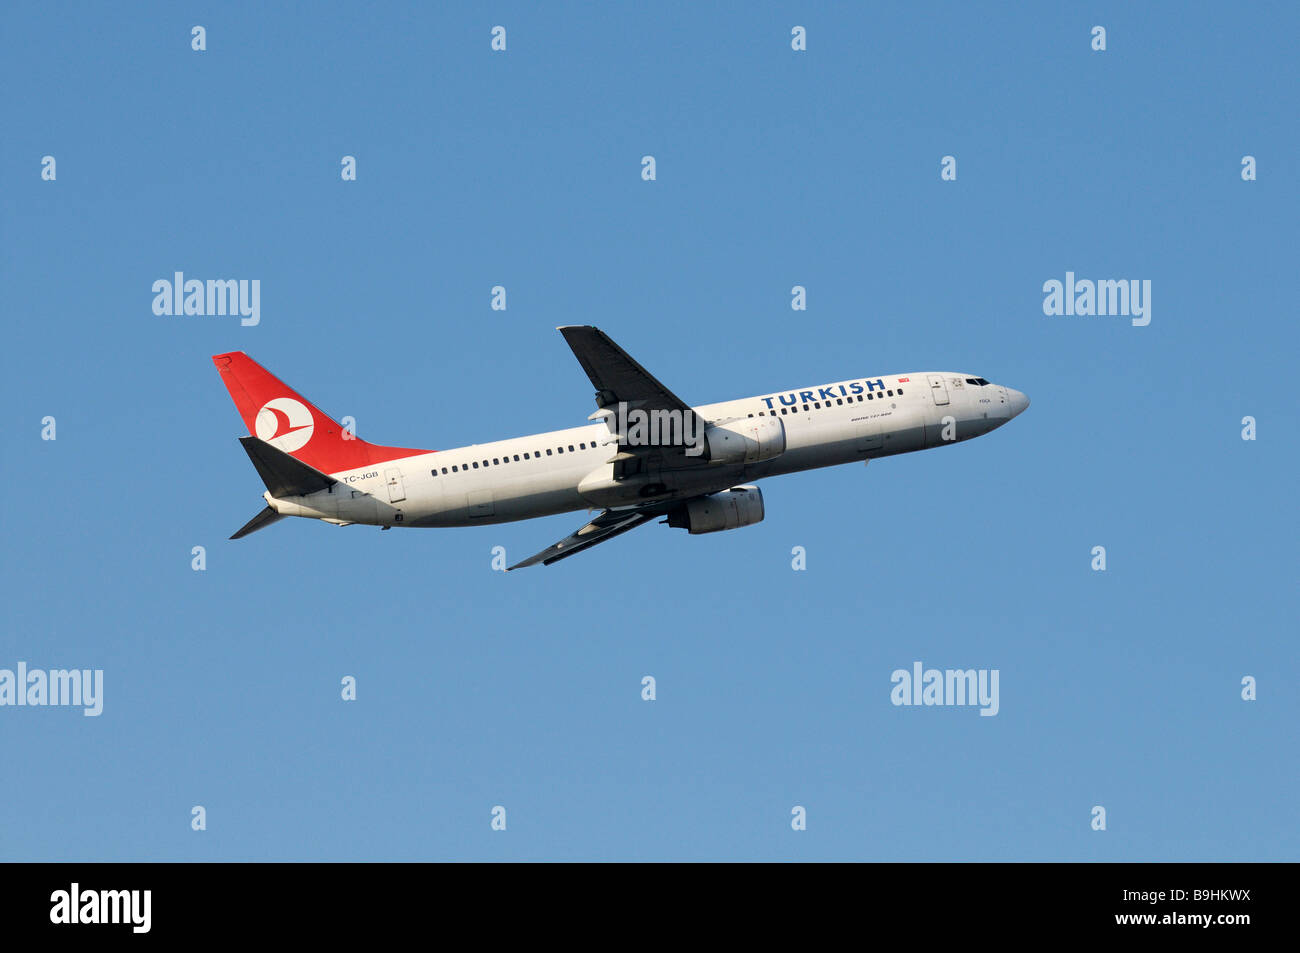 Turkish Airlines commercial aircraft Airbus Boeing 737-800 during climb flight - Stock Image